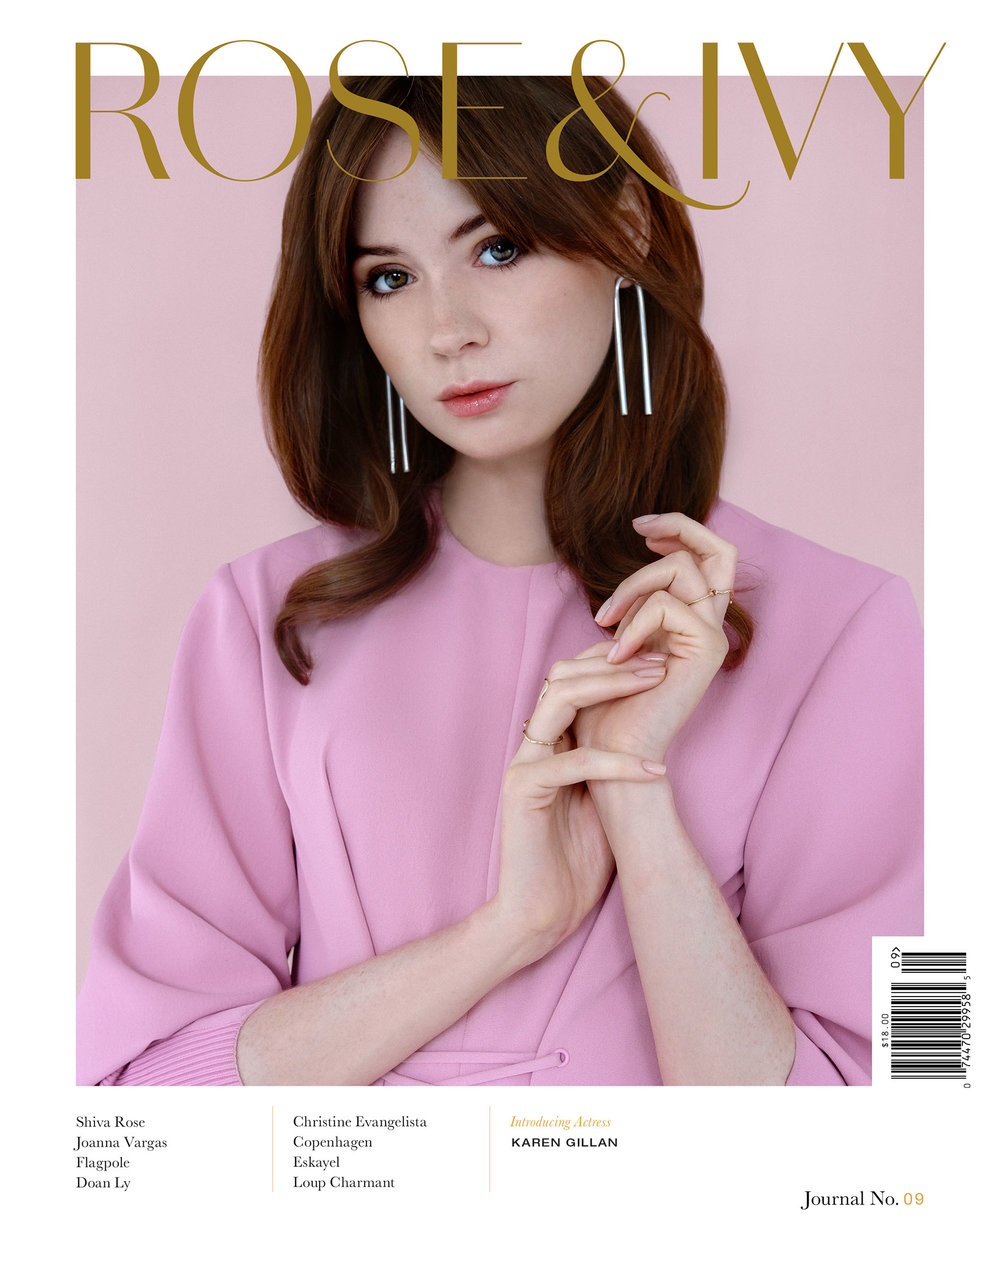 Issue No.09 ROSE & IVY Journal Cover.jpg